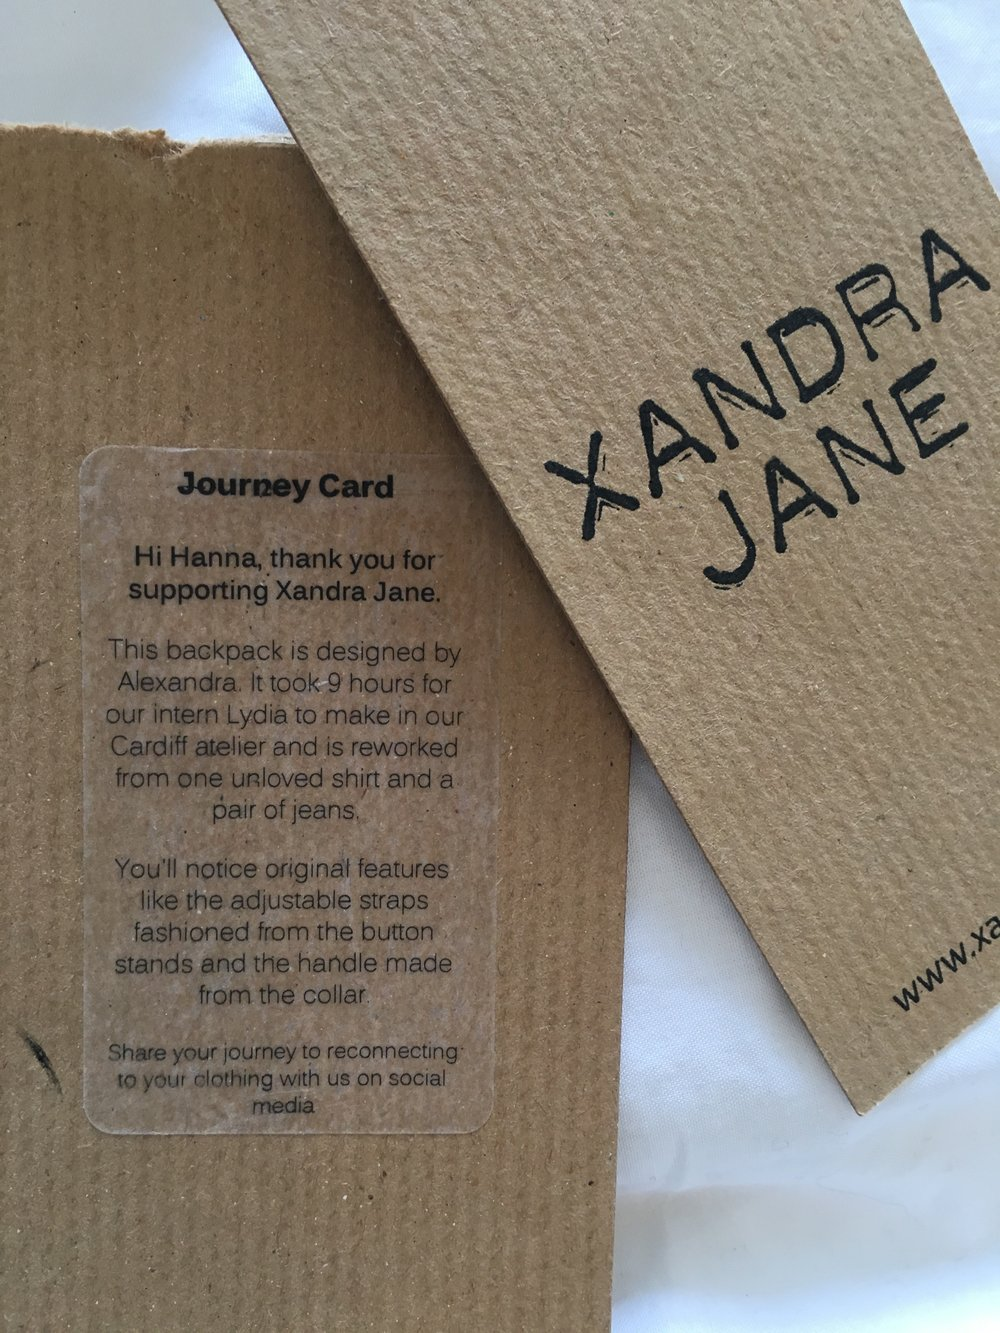 xandra jane design flor and cesta review journey card